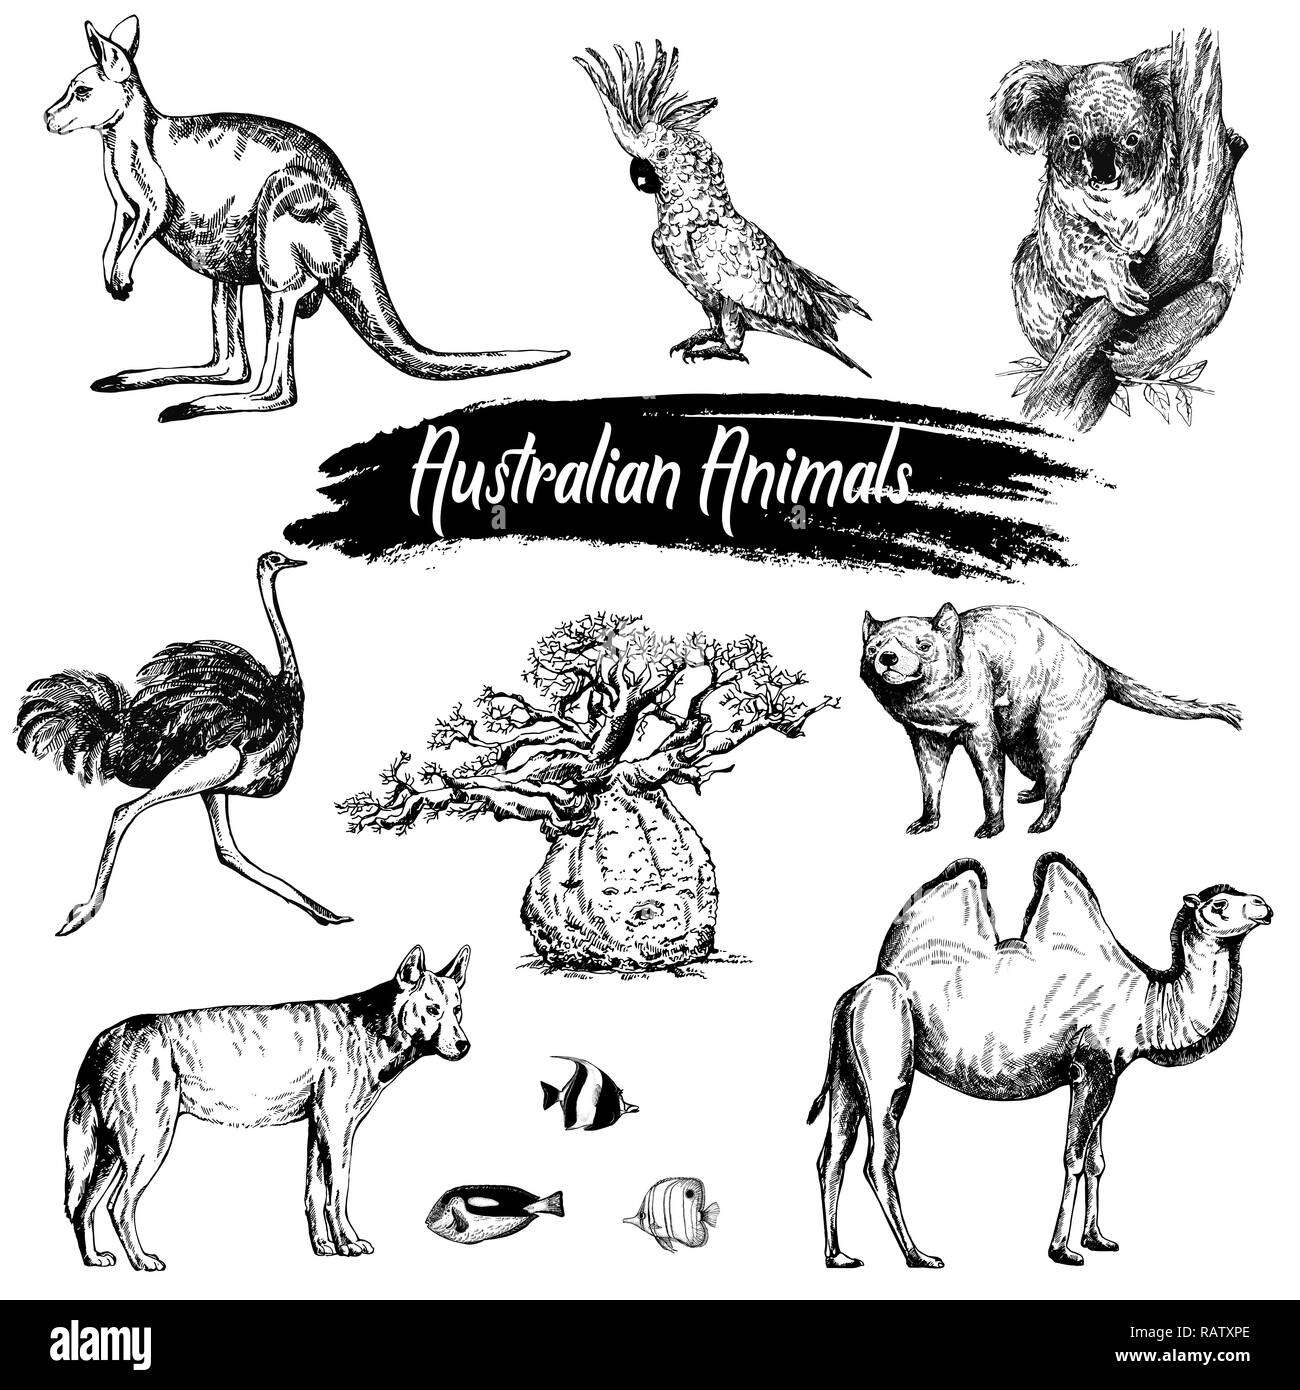 Australian Animals Drawings Set Of Hand Drawn Sketch Style Australian Animals Isolated On